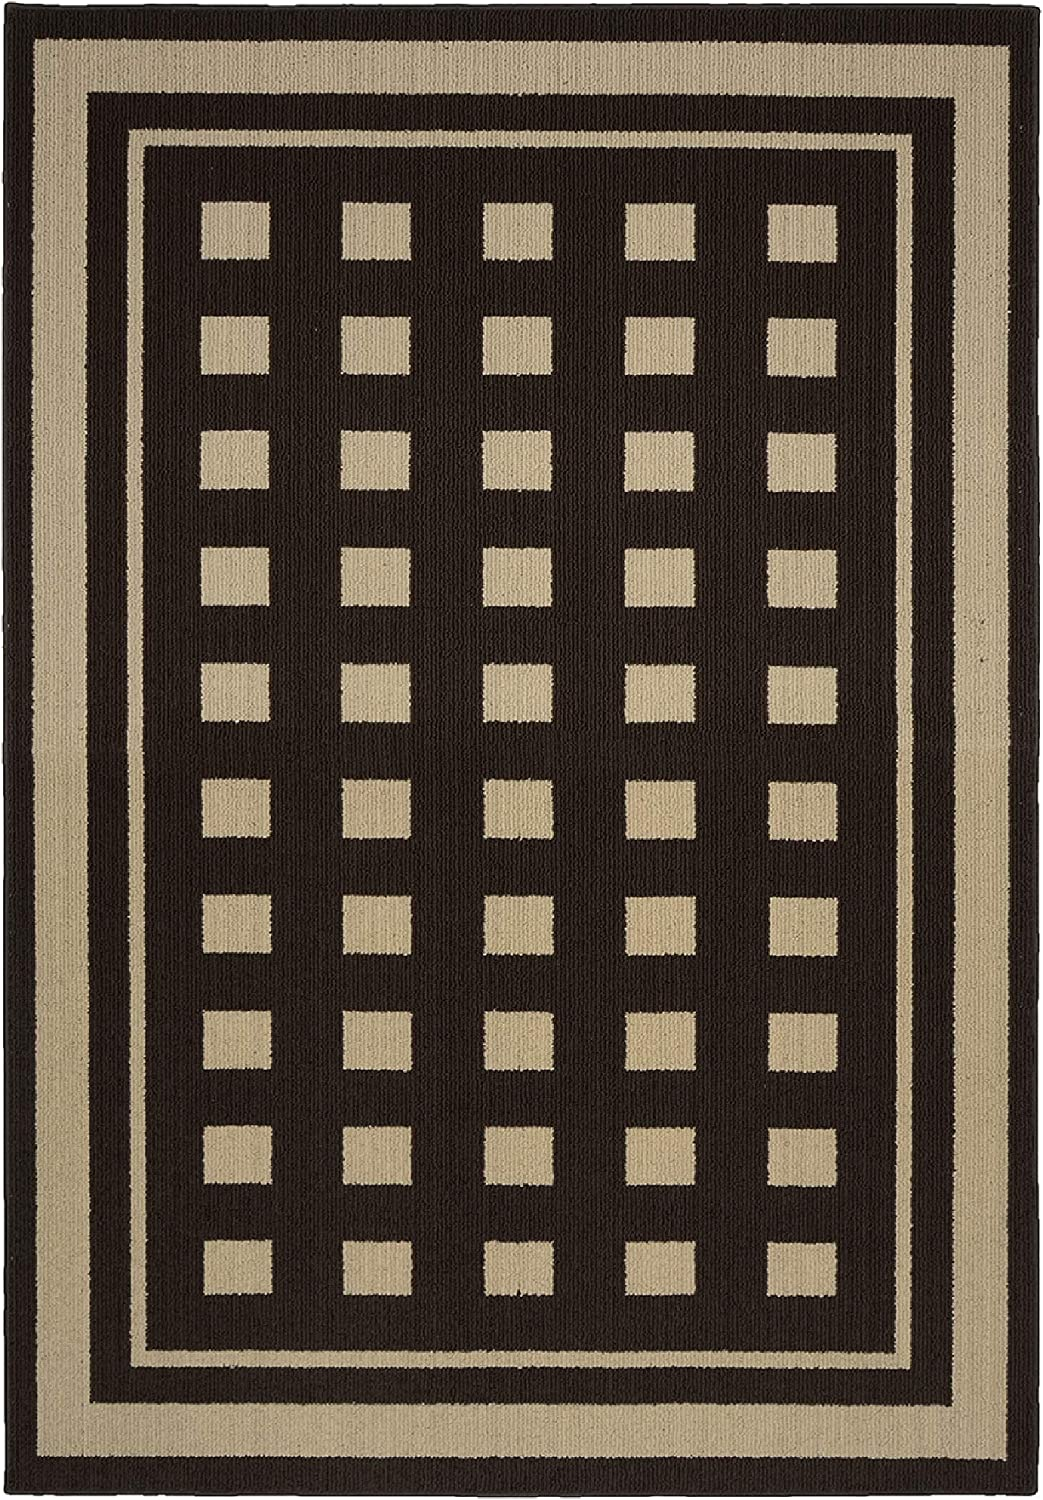 Garland Rug Manorville Jacksonville Mall Indoor Outdoor Area 5 Mocha 7-Foot Limited Special Price